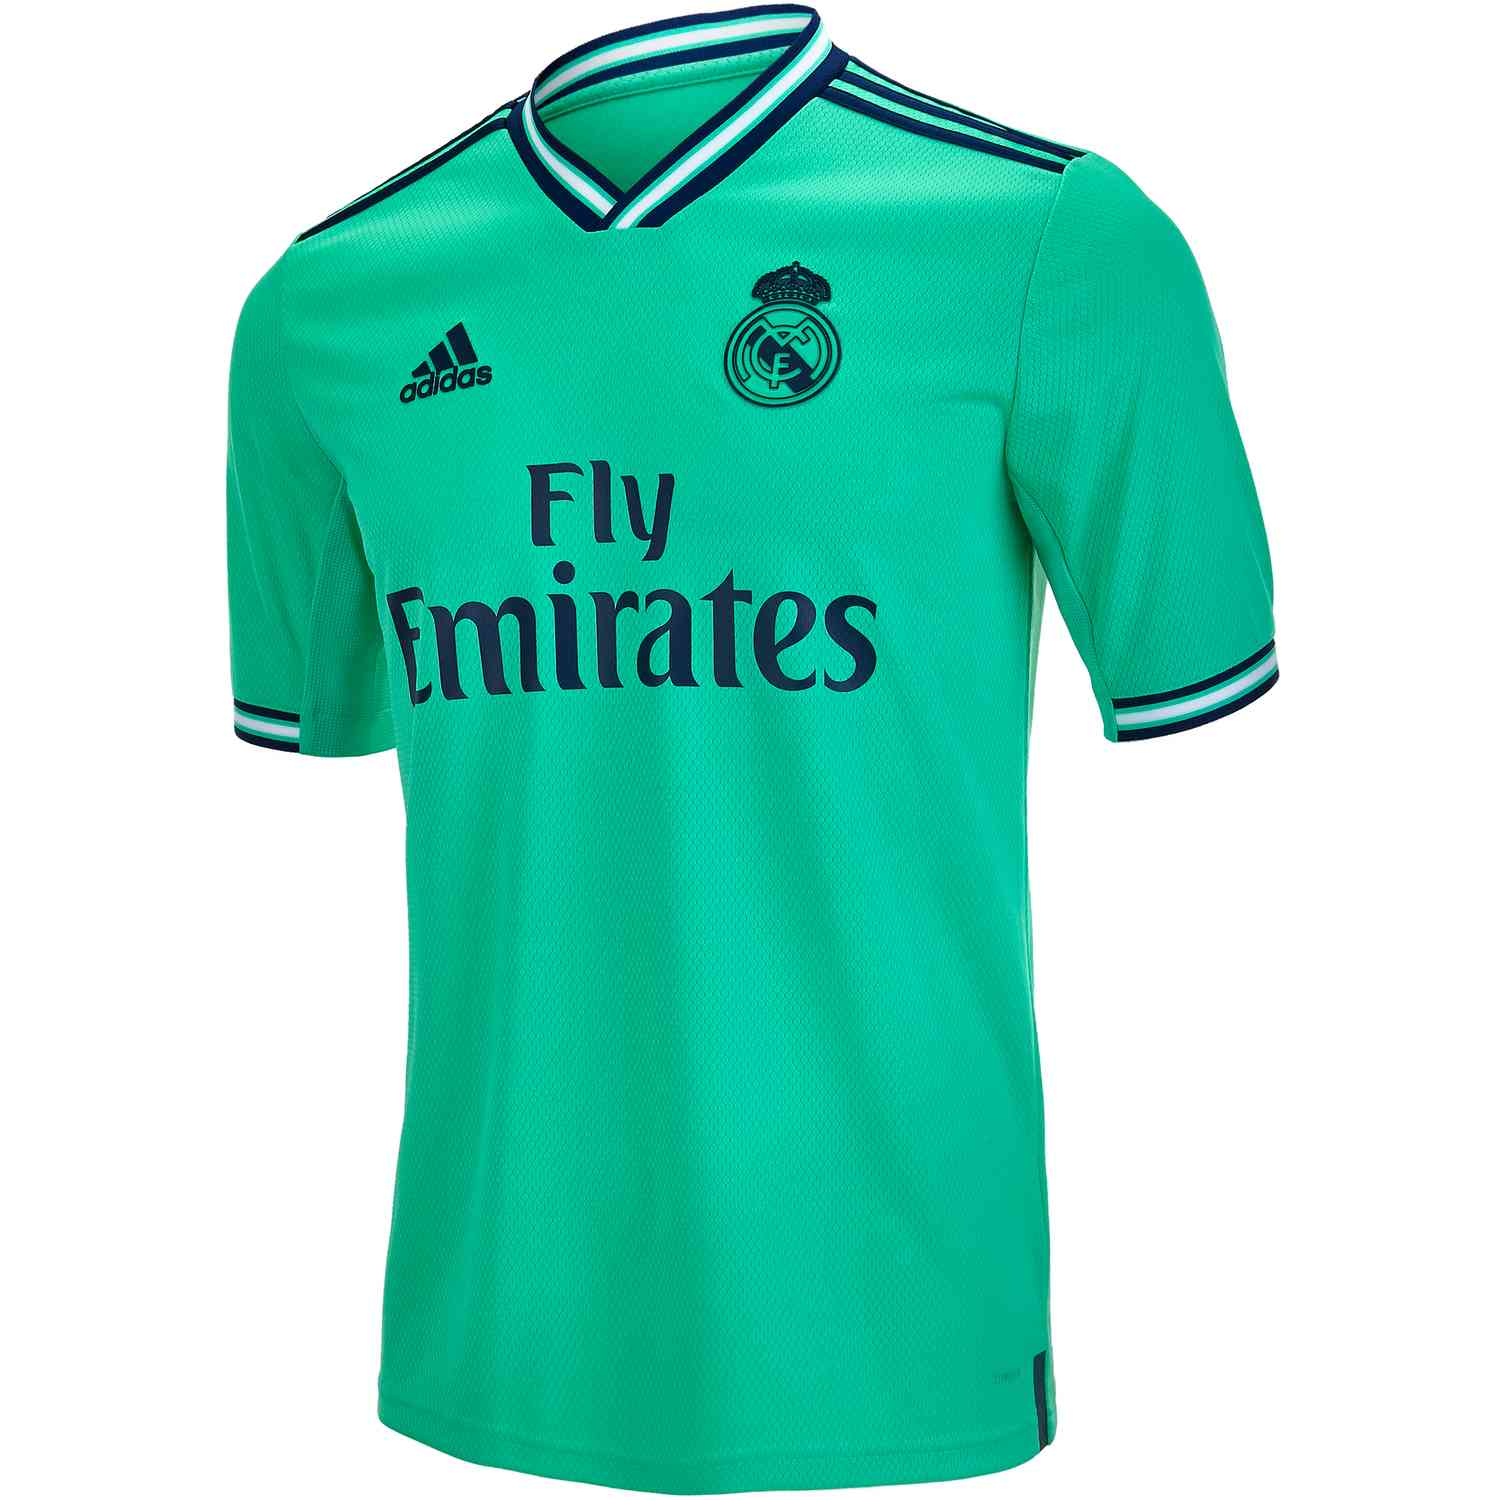 cheap for discount e009d 09519 adidas YOUTH REAL MADRID 3RD JERSEY 19/20